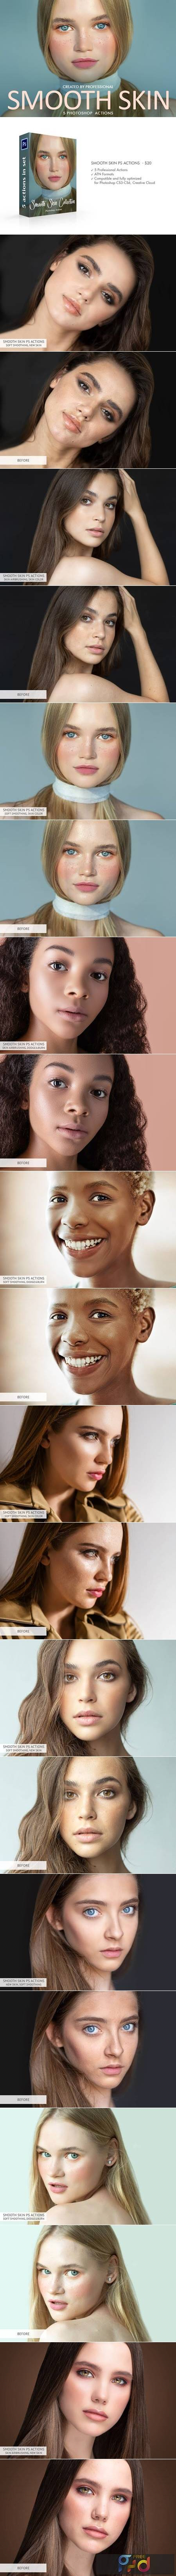 Smooth Skin Photoshop Actions 4723022 1